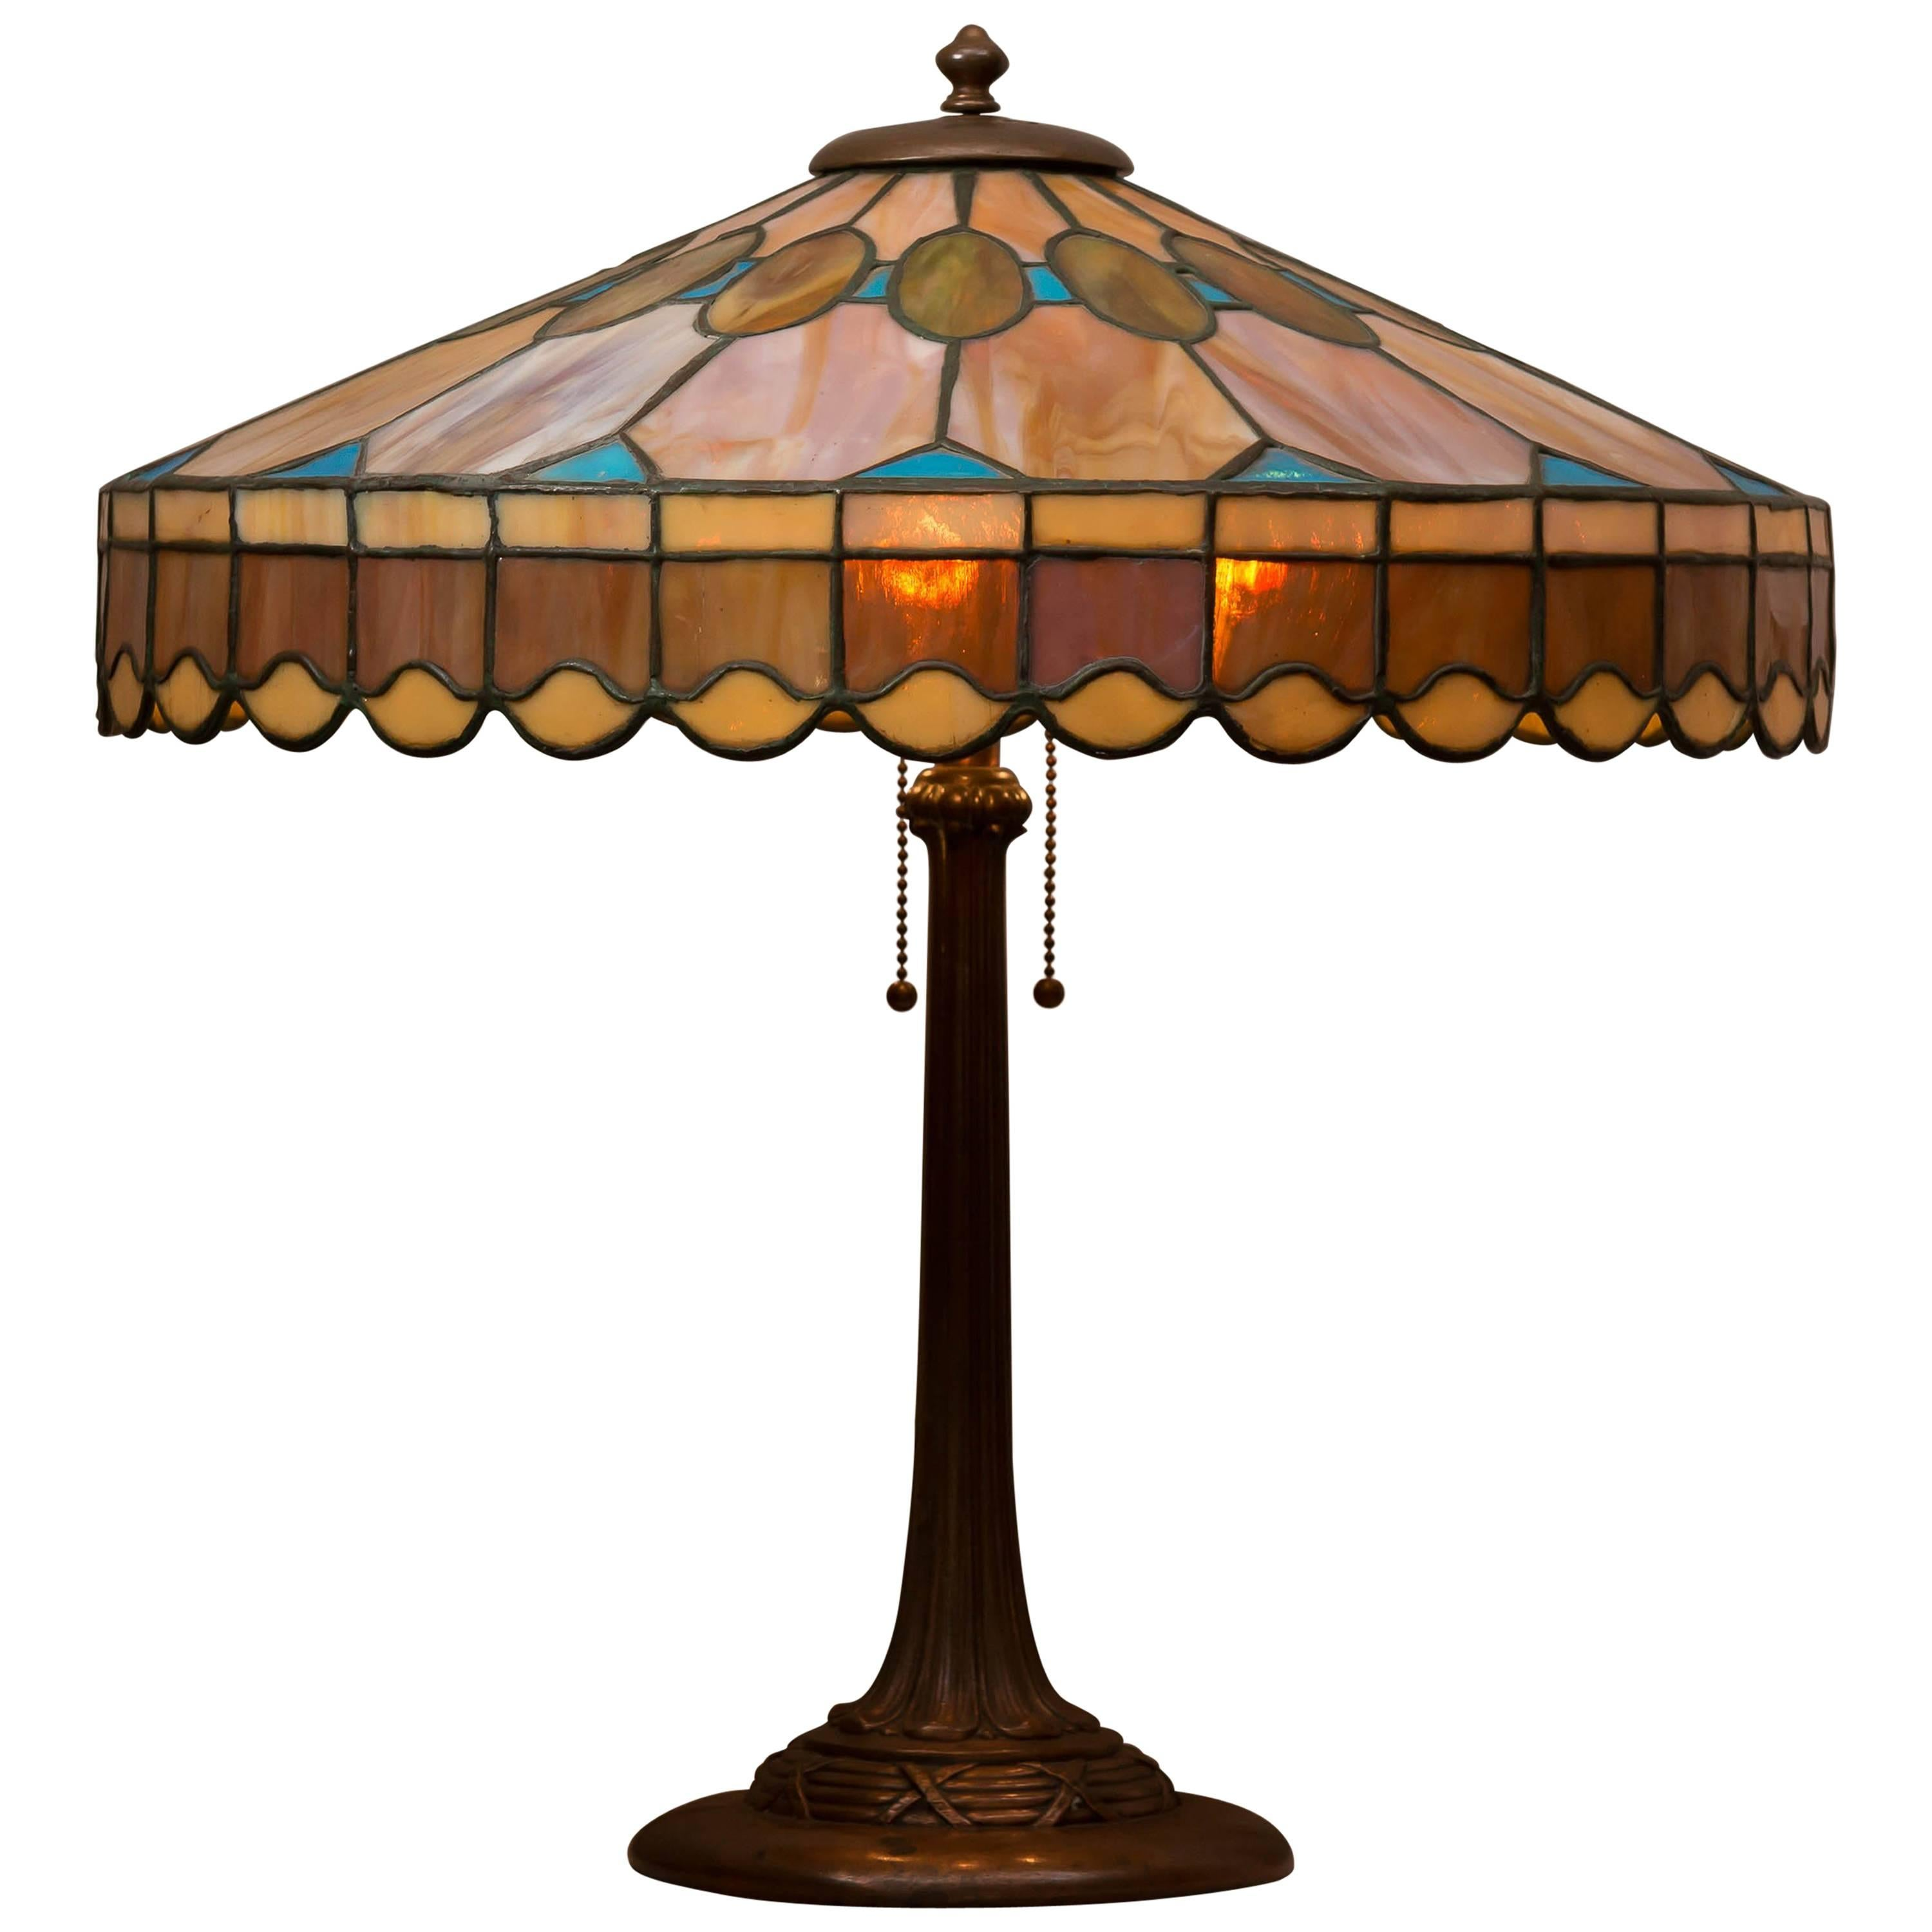 Antique And Vintage Table Lamps   24,684 For Sale At 1stdibs